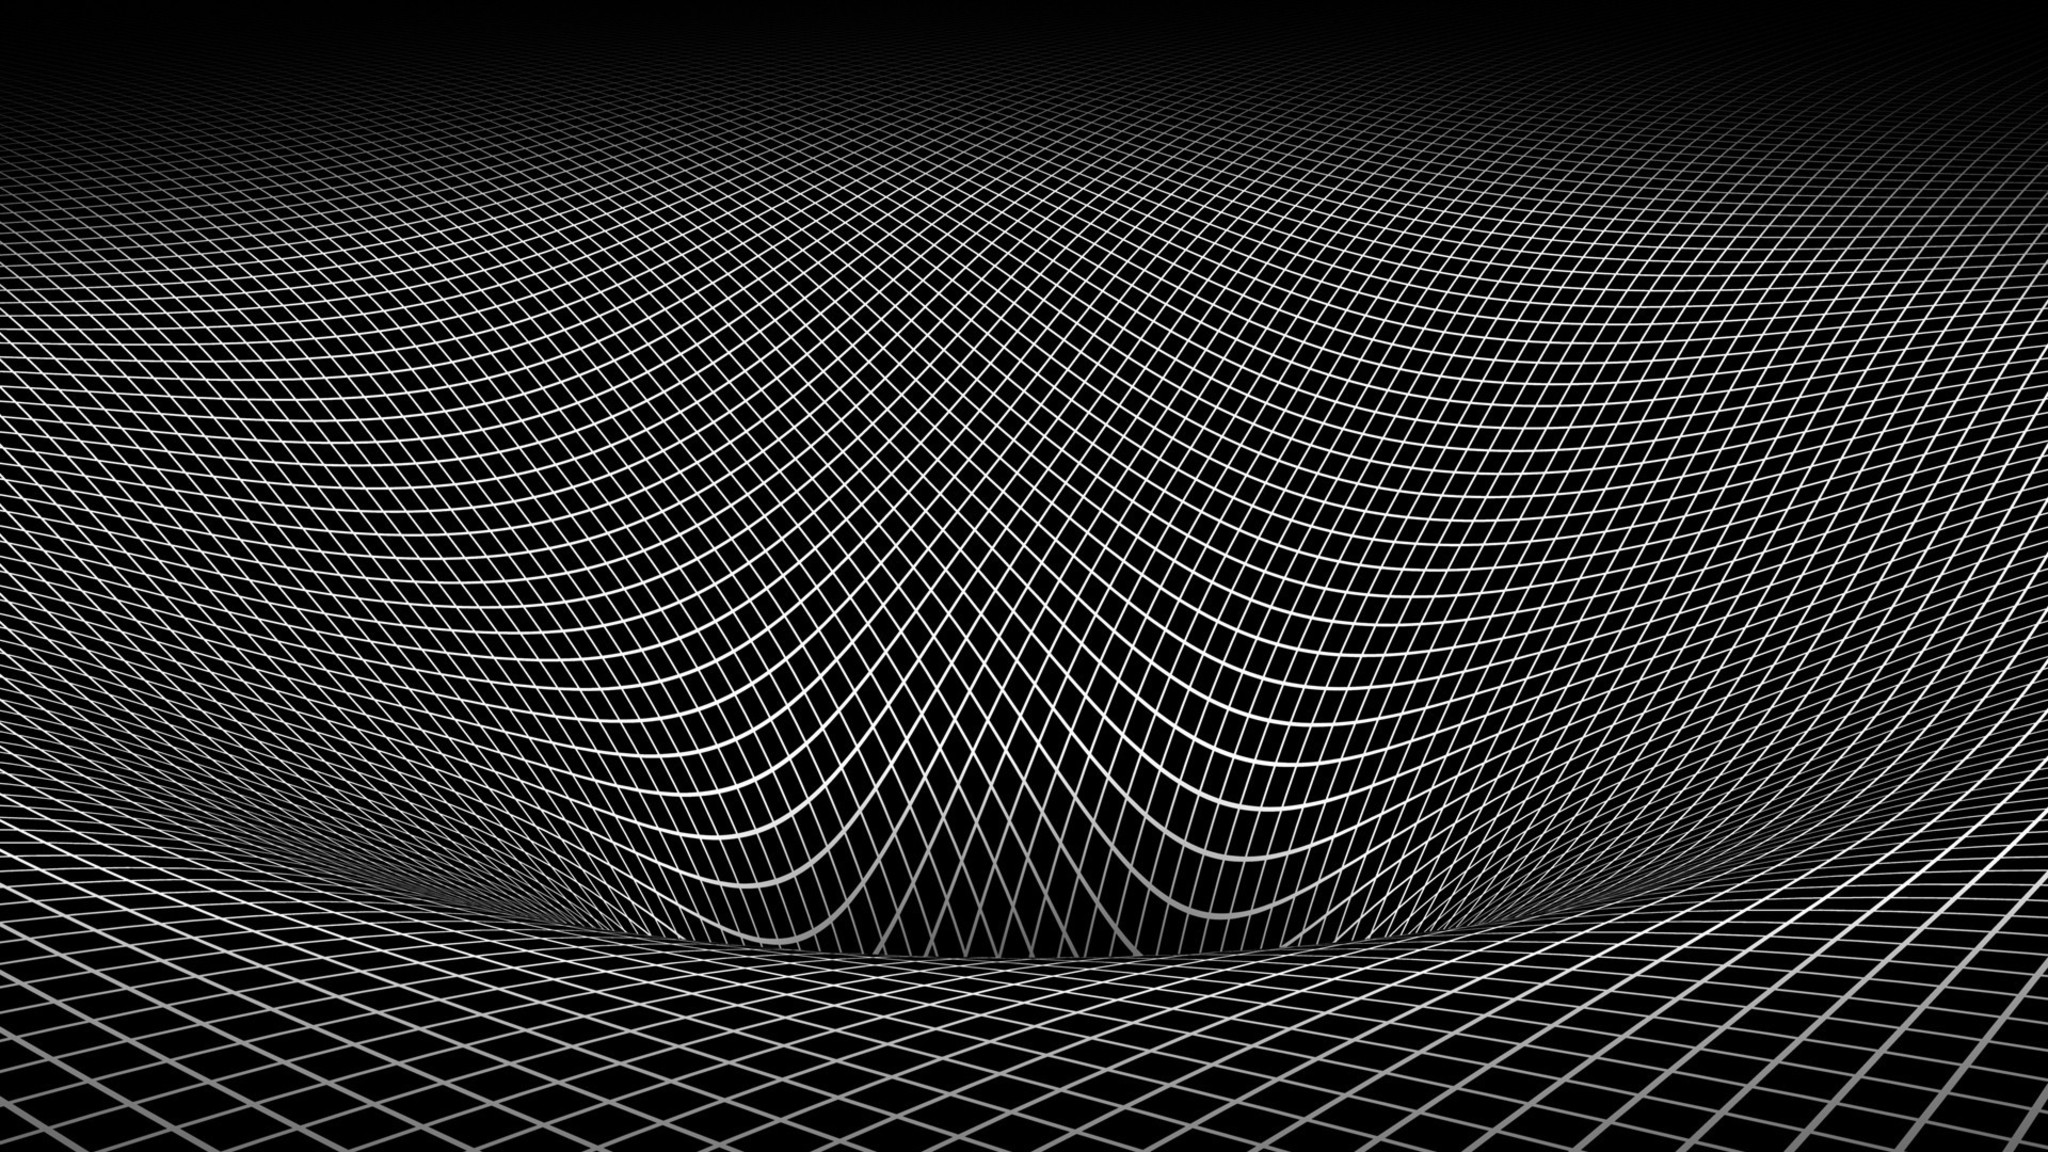 Mozilla Firefox Wallpaper 3d Abstract Black And White Gravity Hole 3d Warped Wallpaper